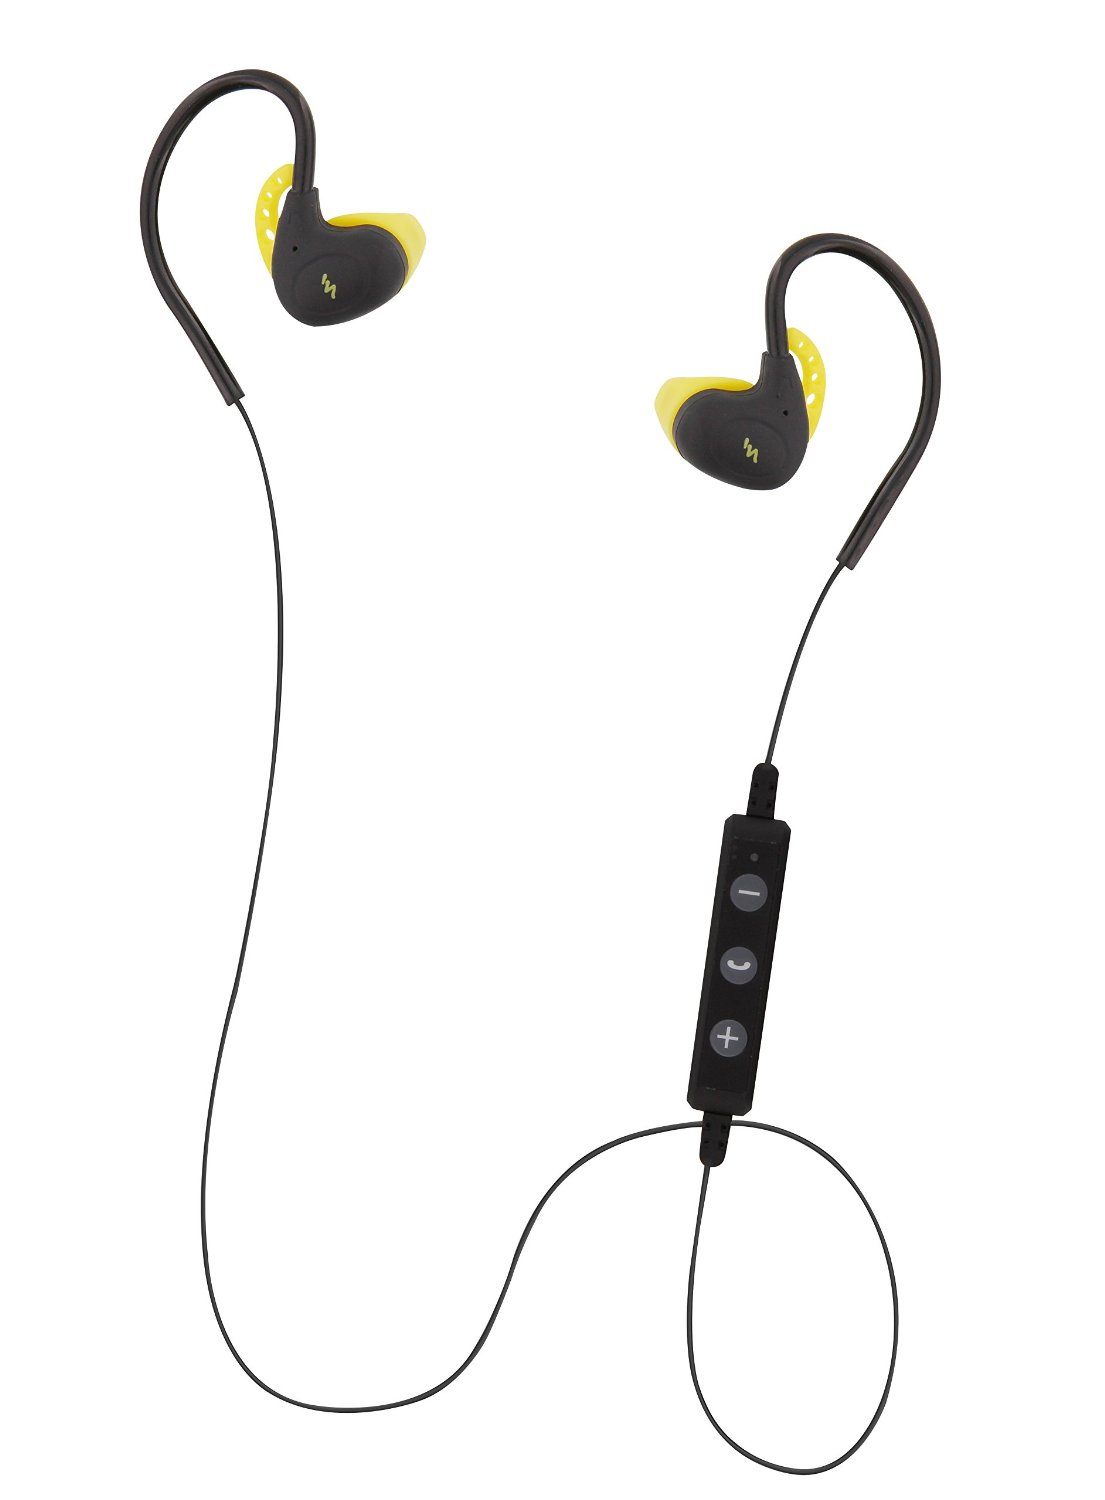 T'nB Ecouteurs Bluetooth 4.1 Sport Stereo Jaune - Micro-casque - 0